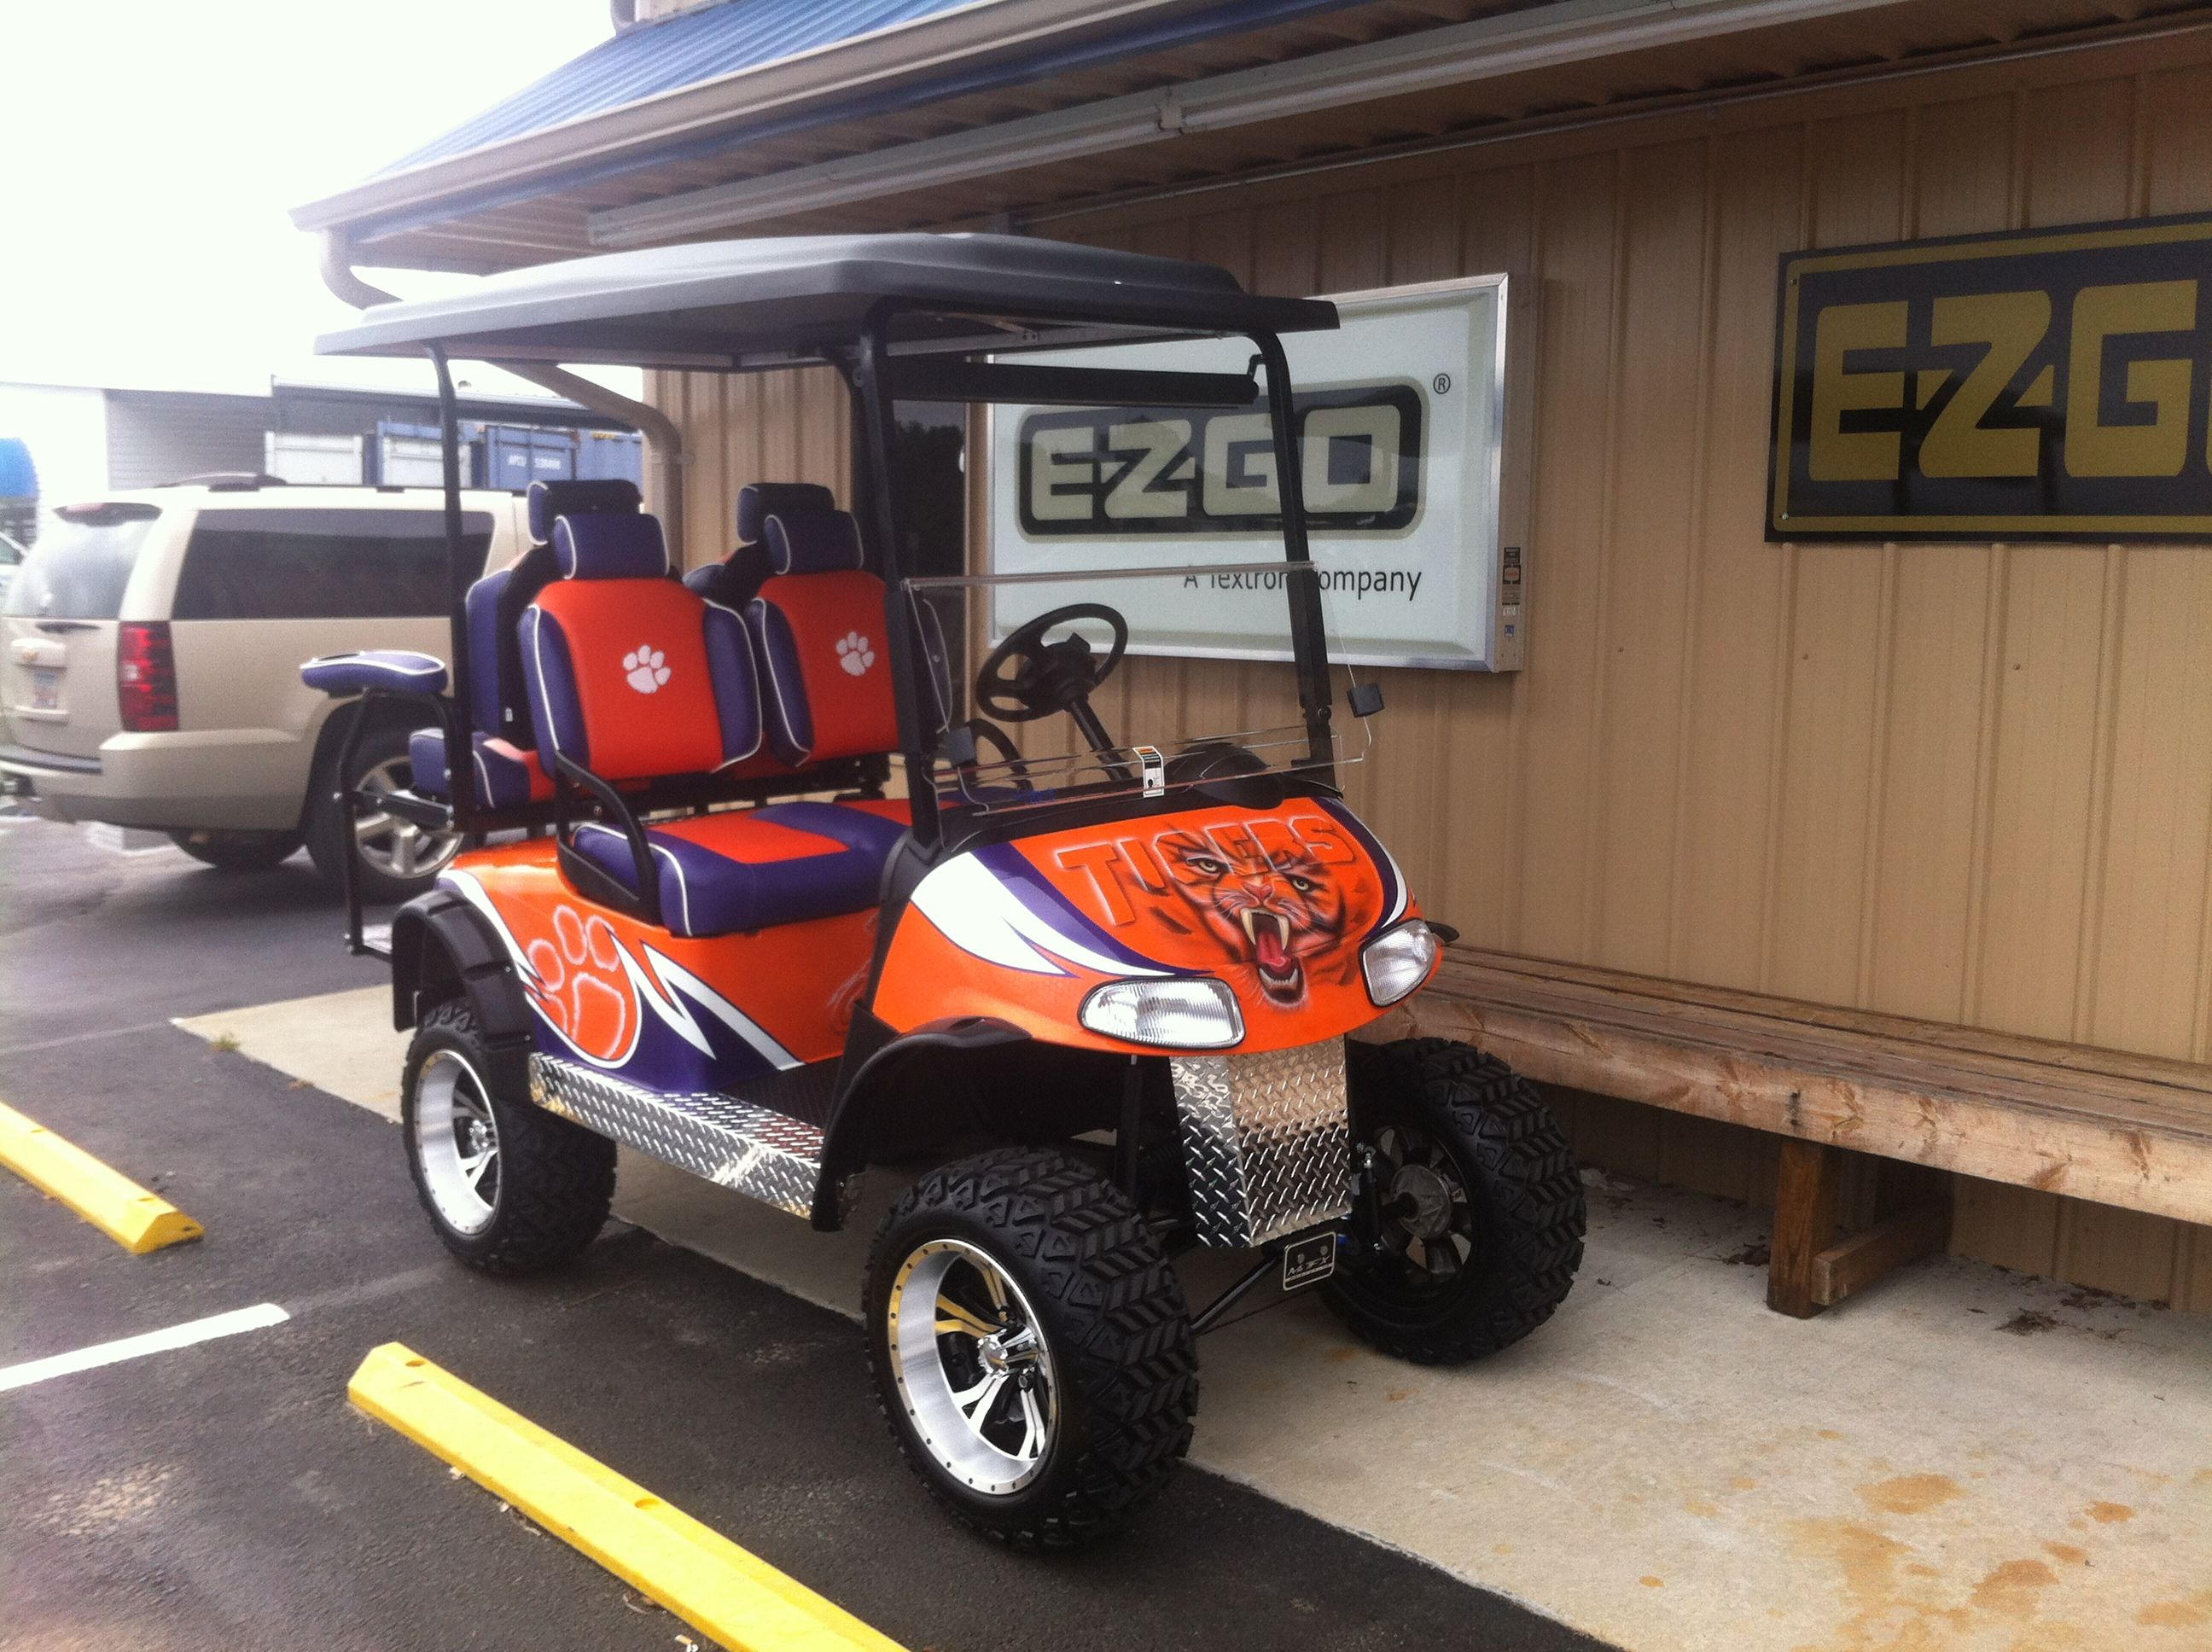 Custom Clemson Tigers cart | our custom themed golf carts ... on auburn university golf club clothing, auburn university club golf course, beach buggy cart,